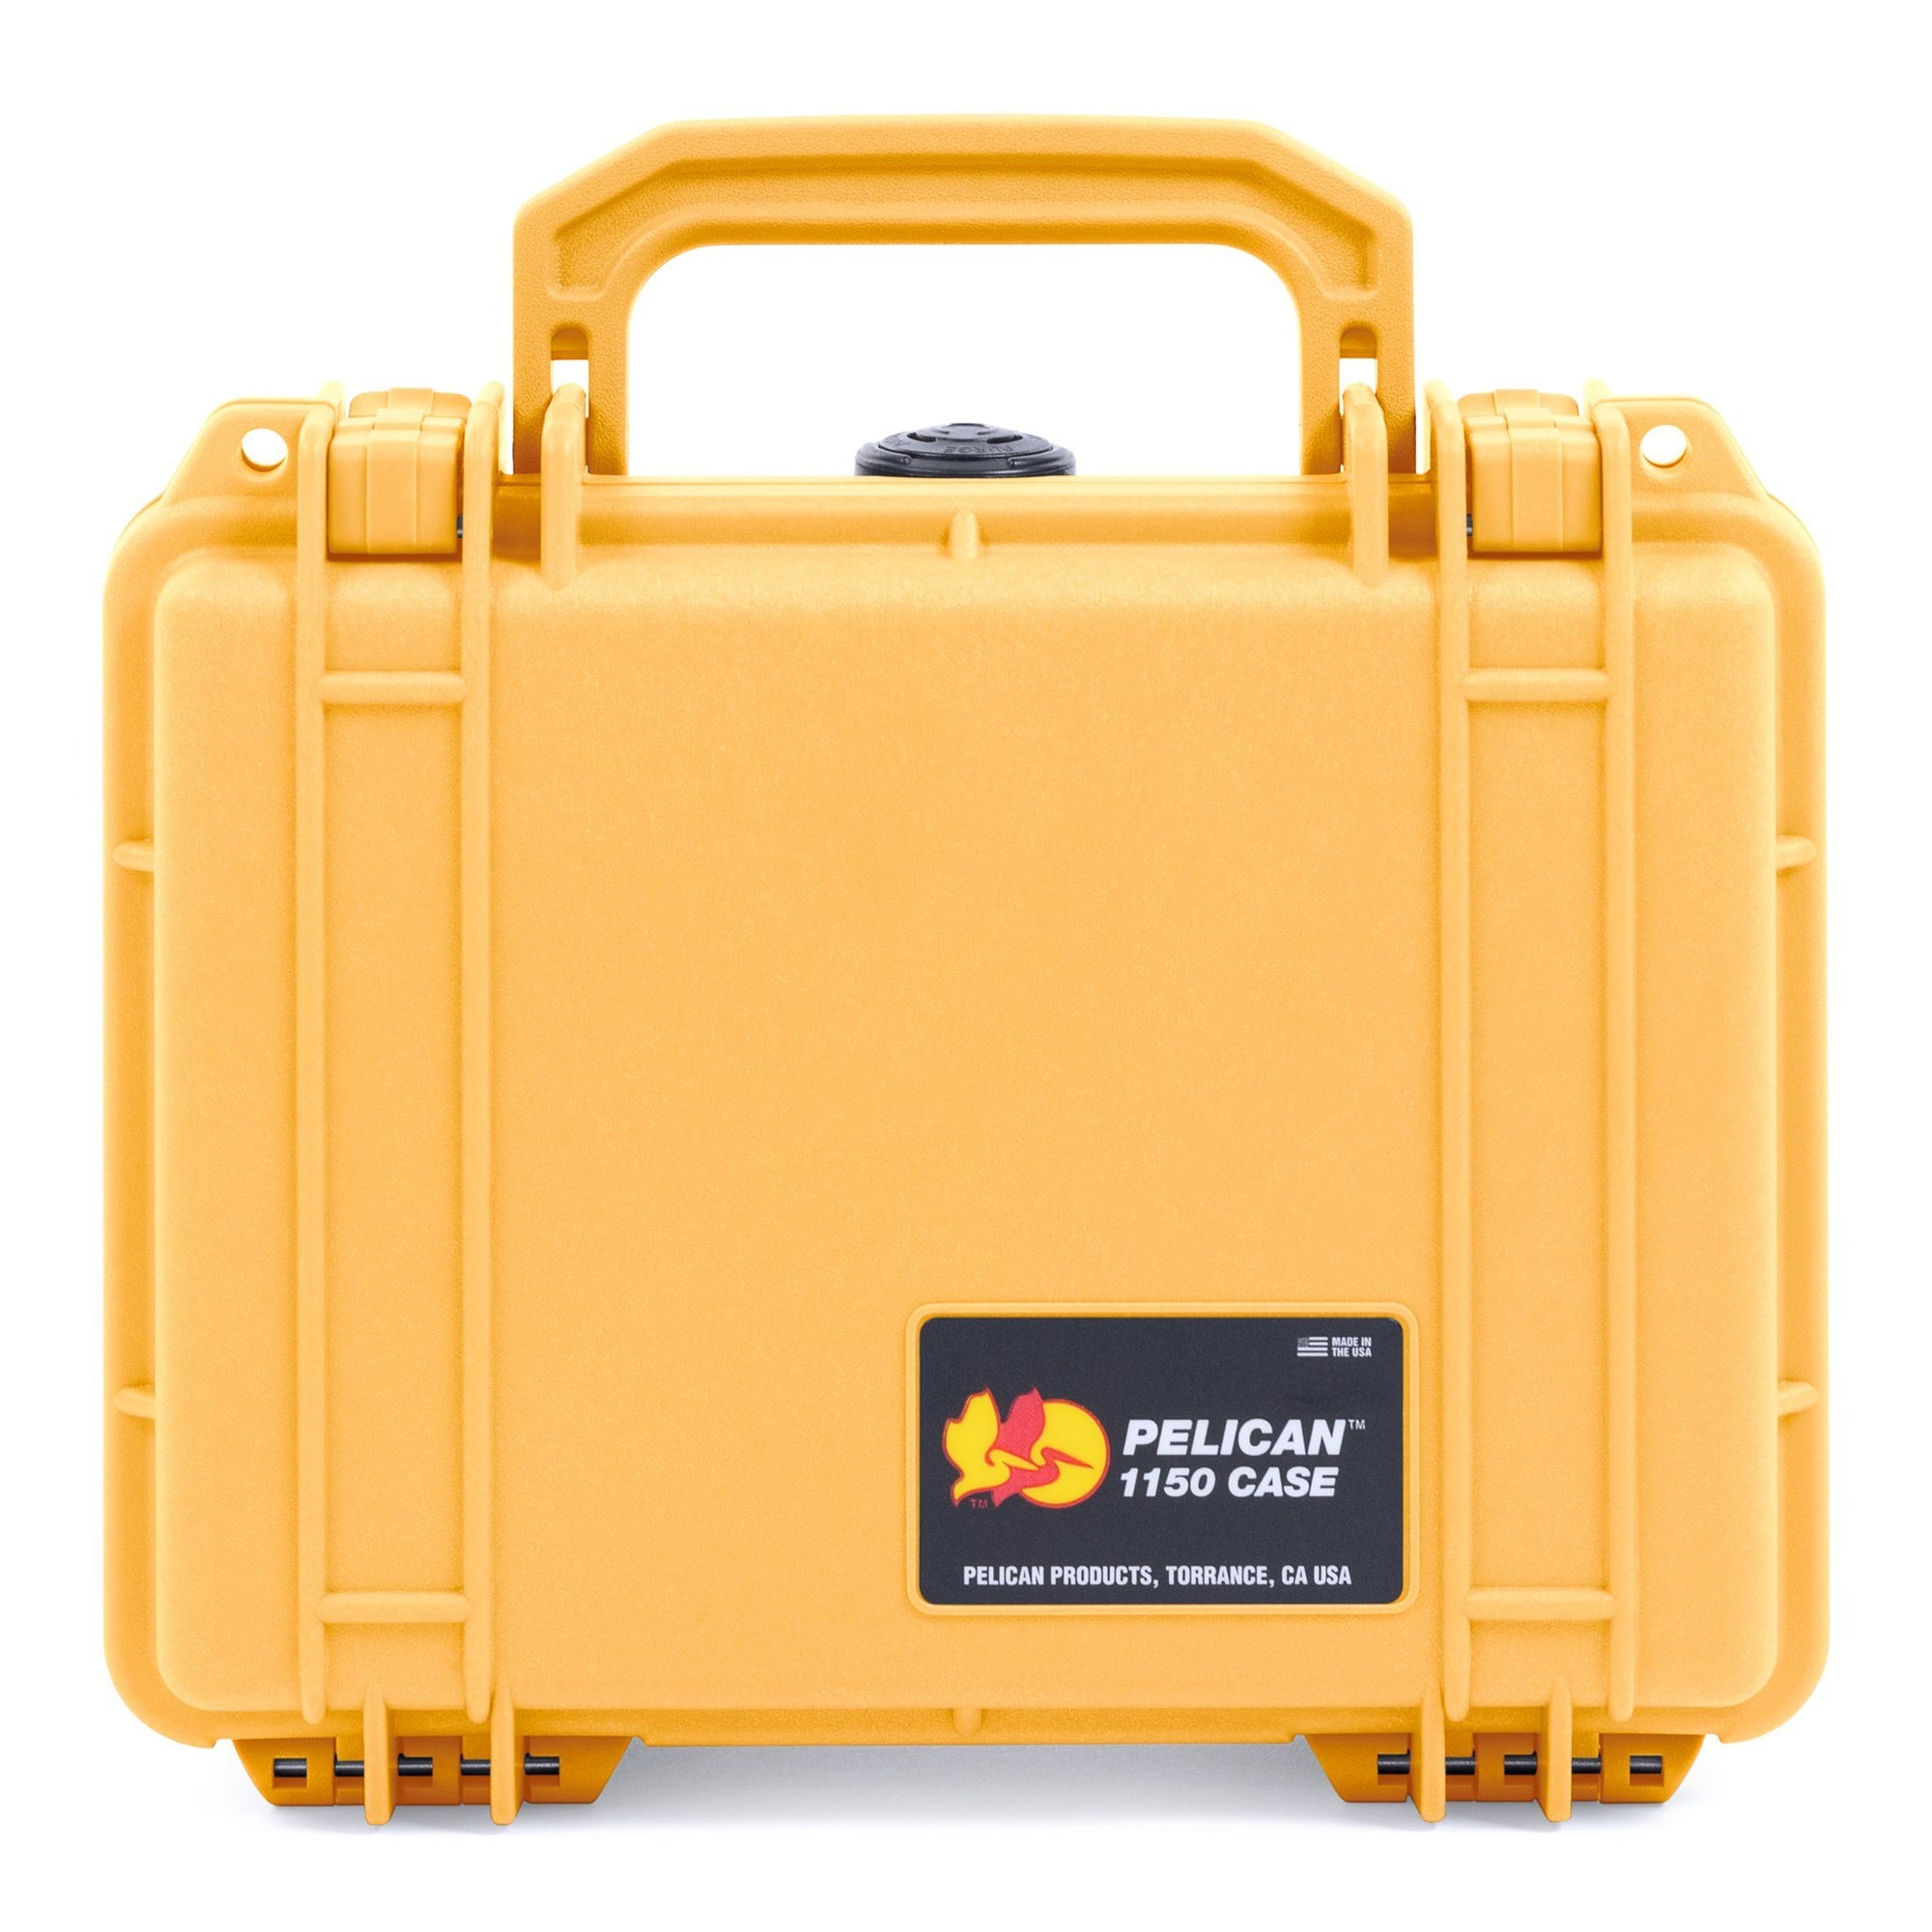 Pelican 1150 Case, Yellow - Pelican Color Case